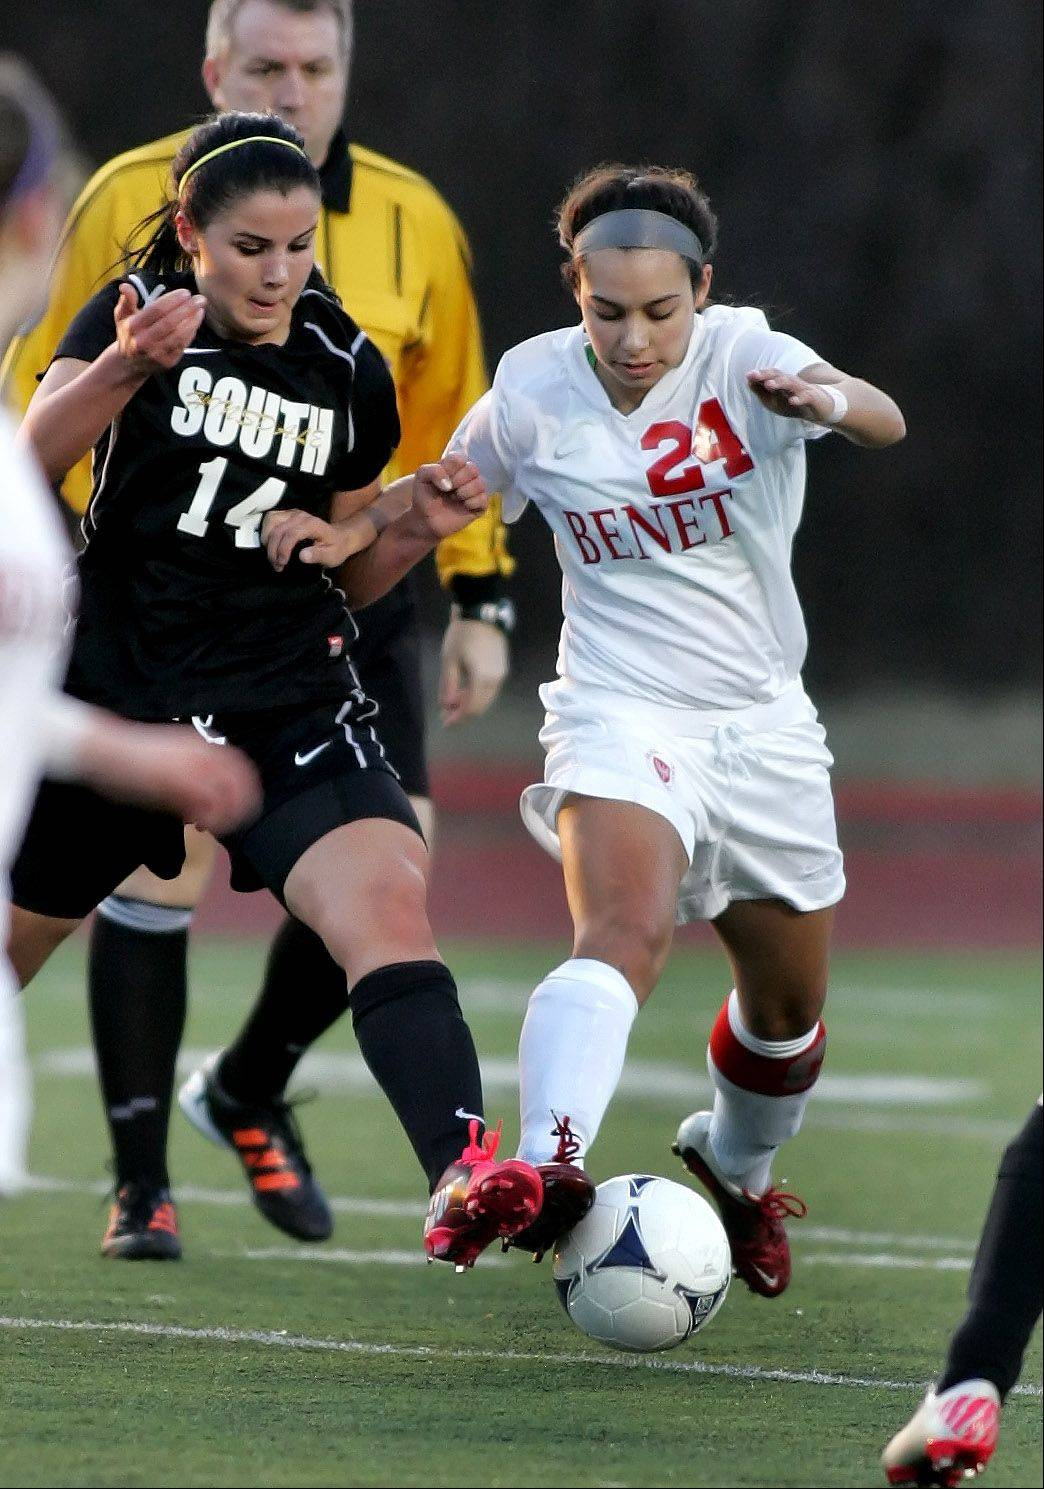 Benet's Jamei Borges, right, takes control of the ball from Hinsdale South's Maggie Nicosia Tuesday's soccer game in Lisle.